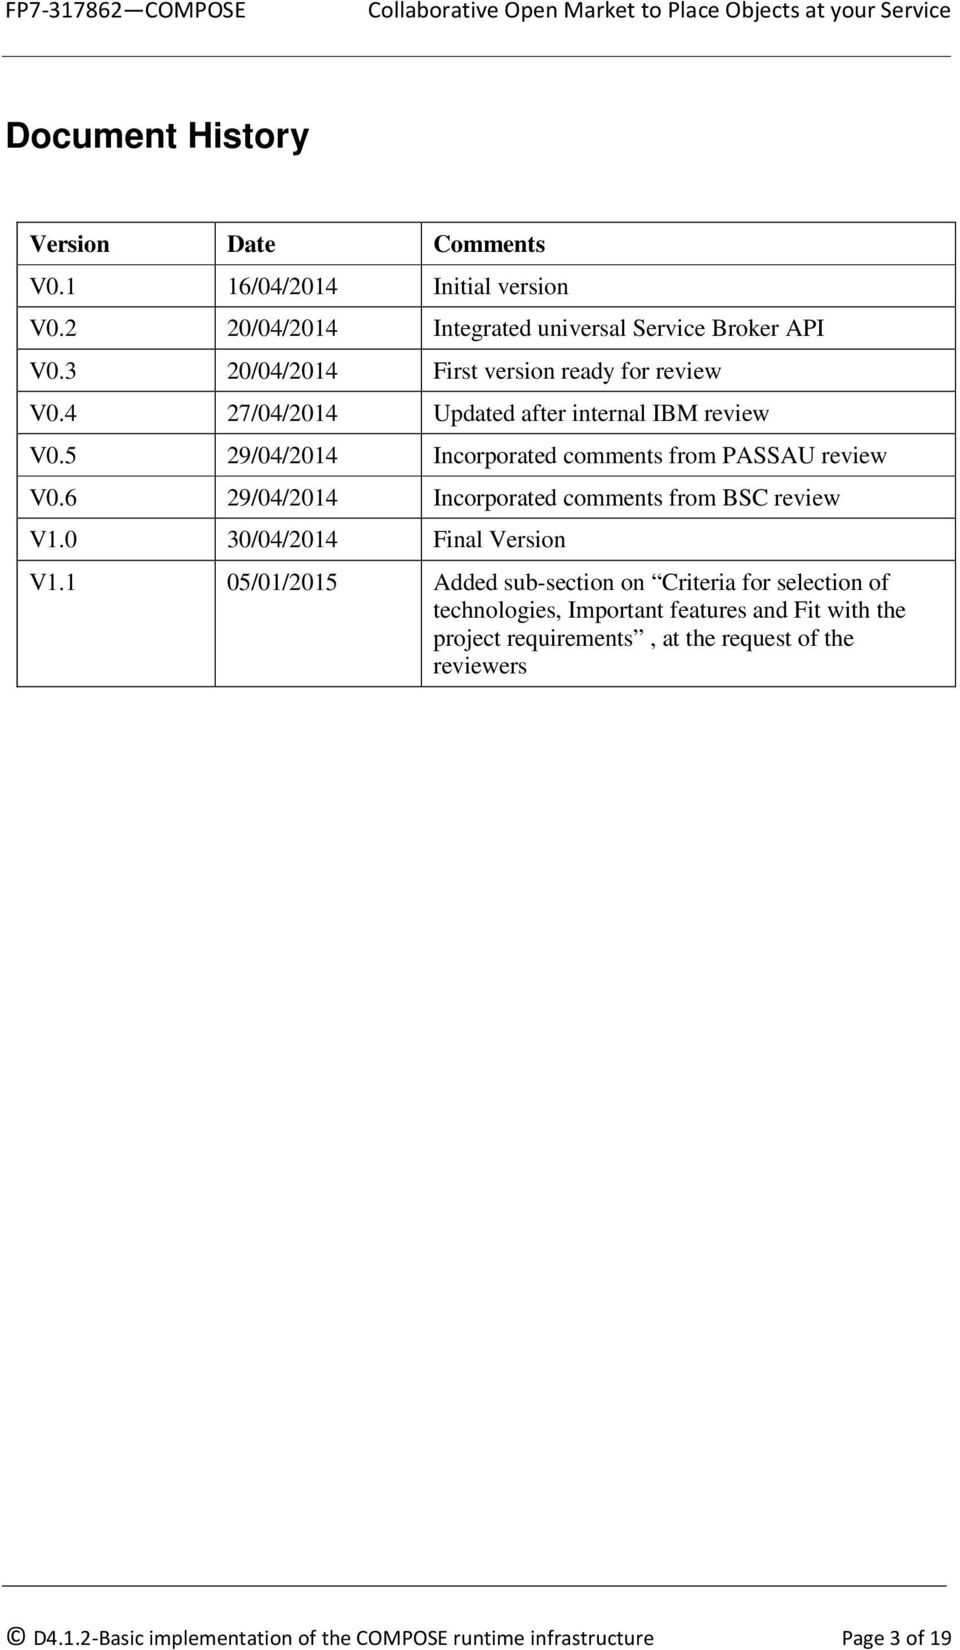 5 29/04/2014 Incorporated comments from PASSAU review V0.6 29/04/2014 Incorporated comments from BSC review V1.0 30/04/2014 Final Version V1.